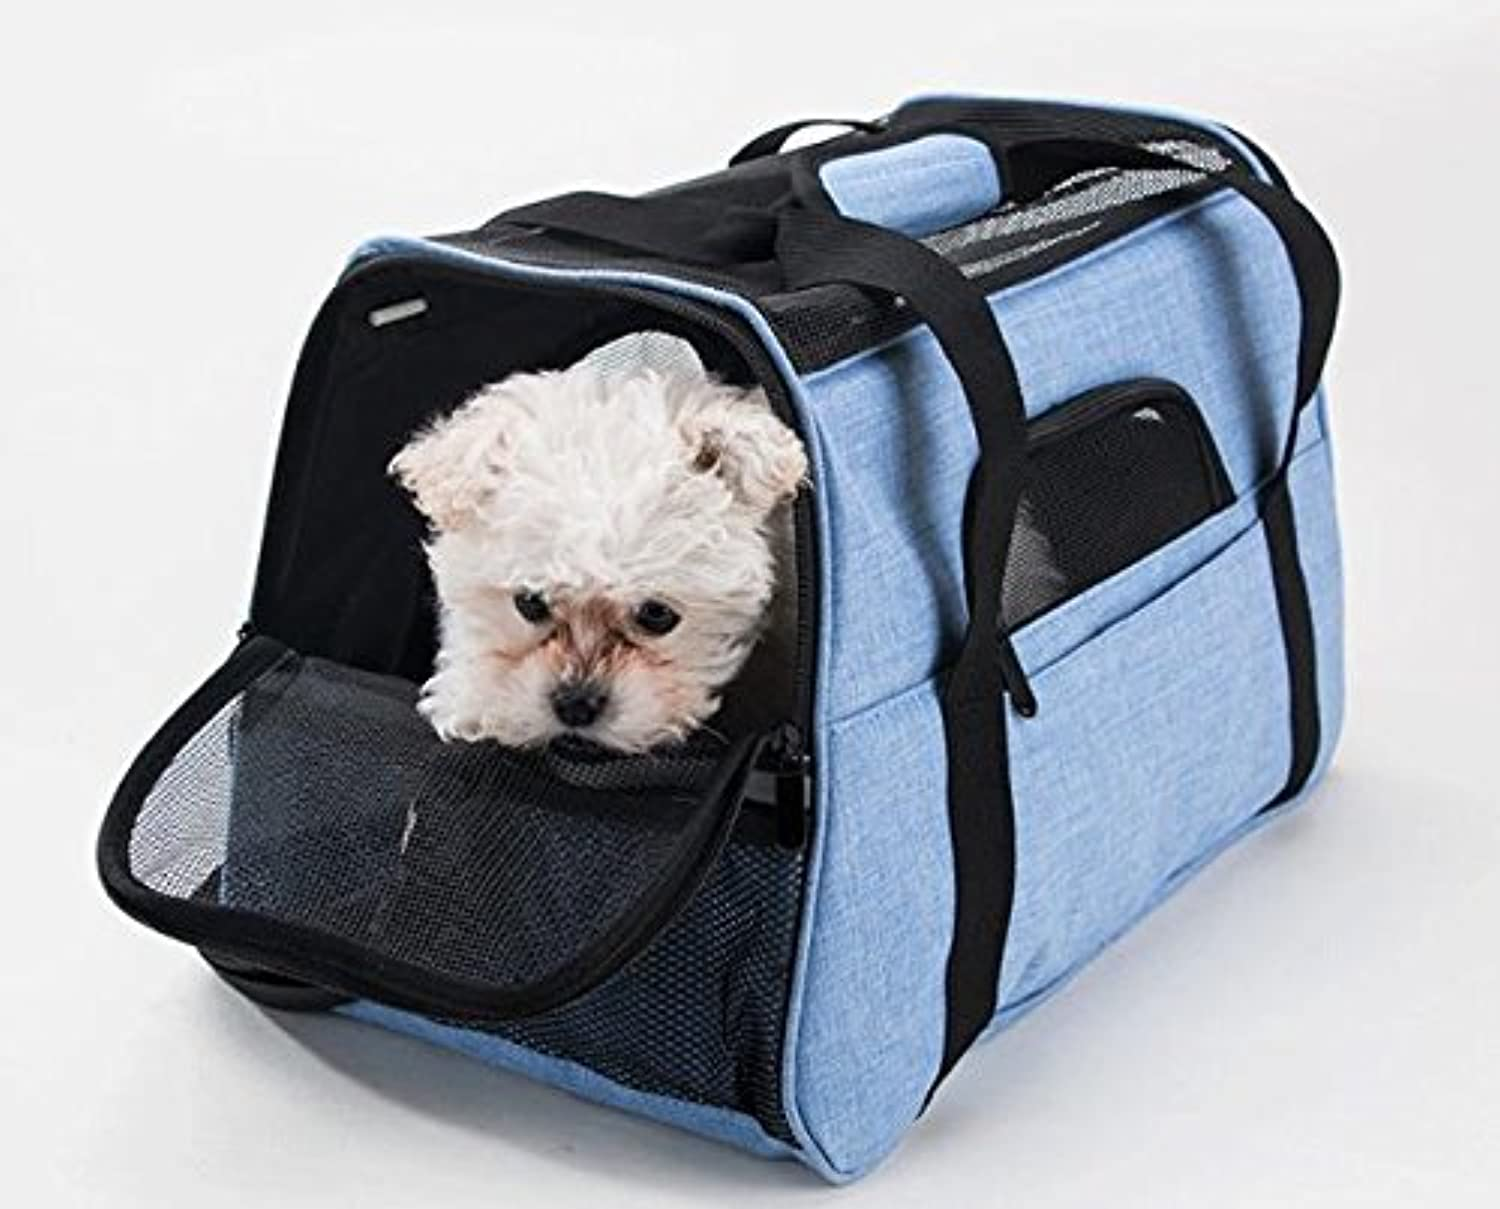 IW.HLMF Pet Travel Carrier Shoulder Bag Comfort Expandable Foldable Travel Carriers For Dogs And Cats Backpack Supplies(46cm X 25cm X 33cm)